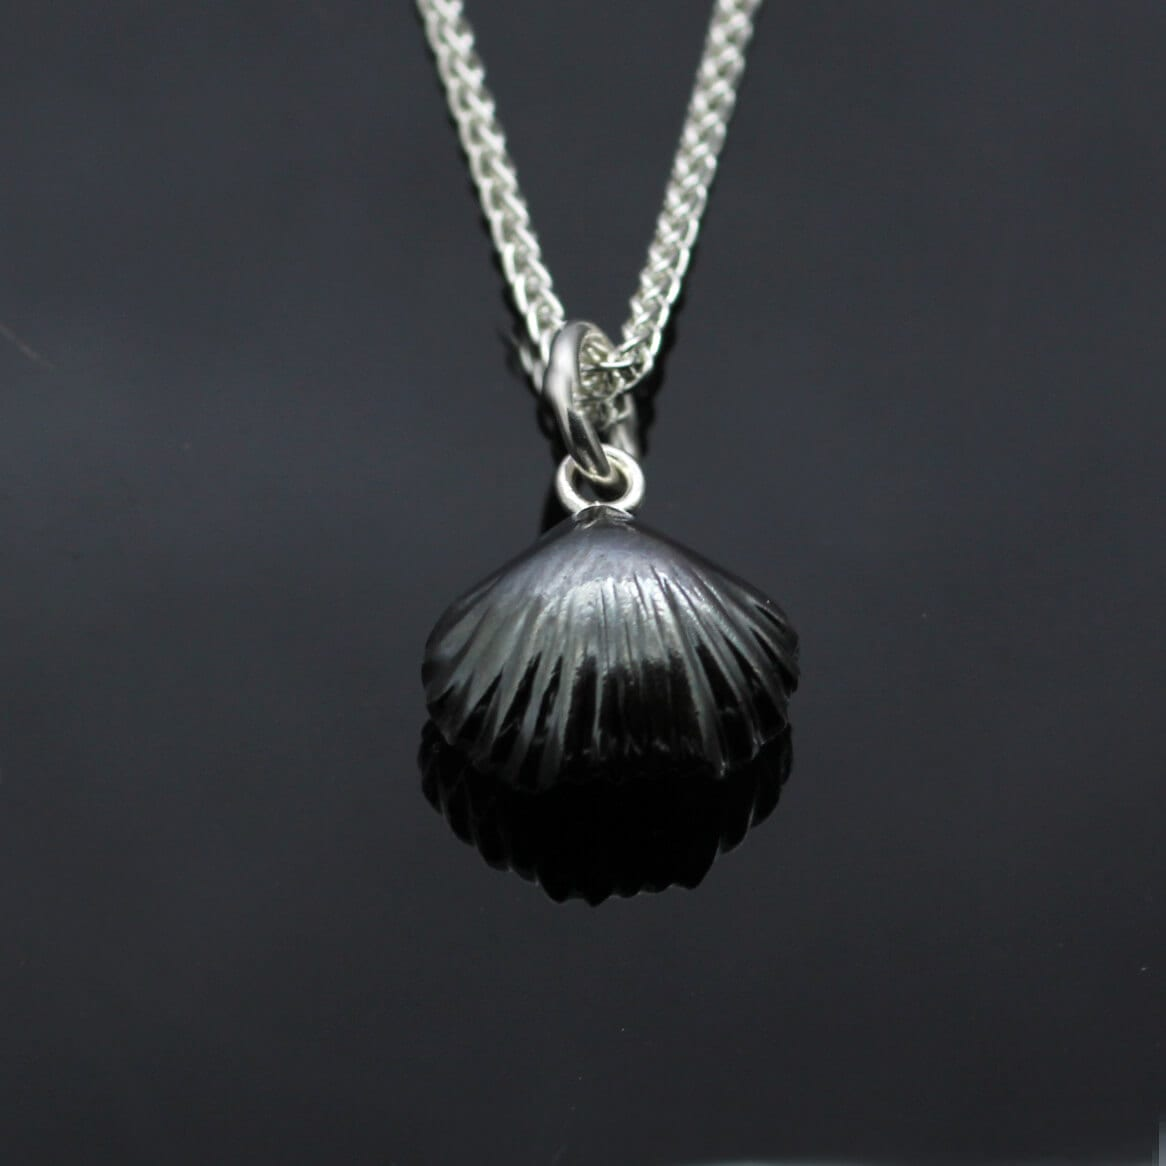 Handcrafted oxidised Sterling Silver Fossil Shell pendant